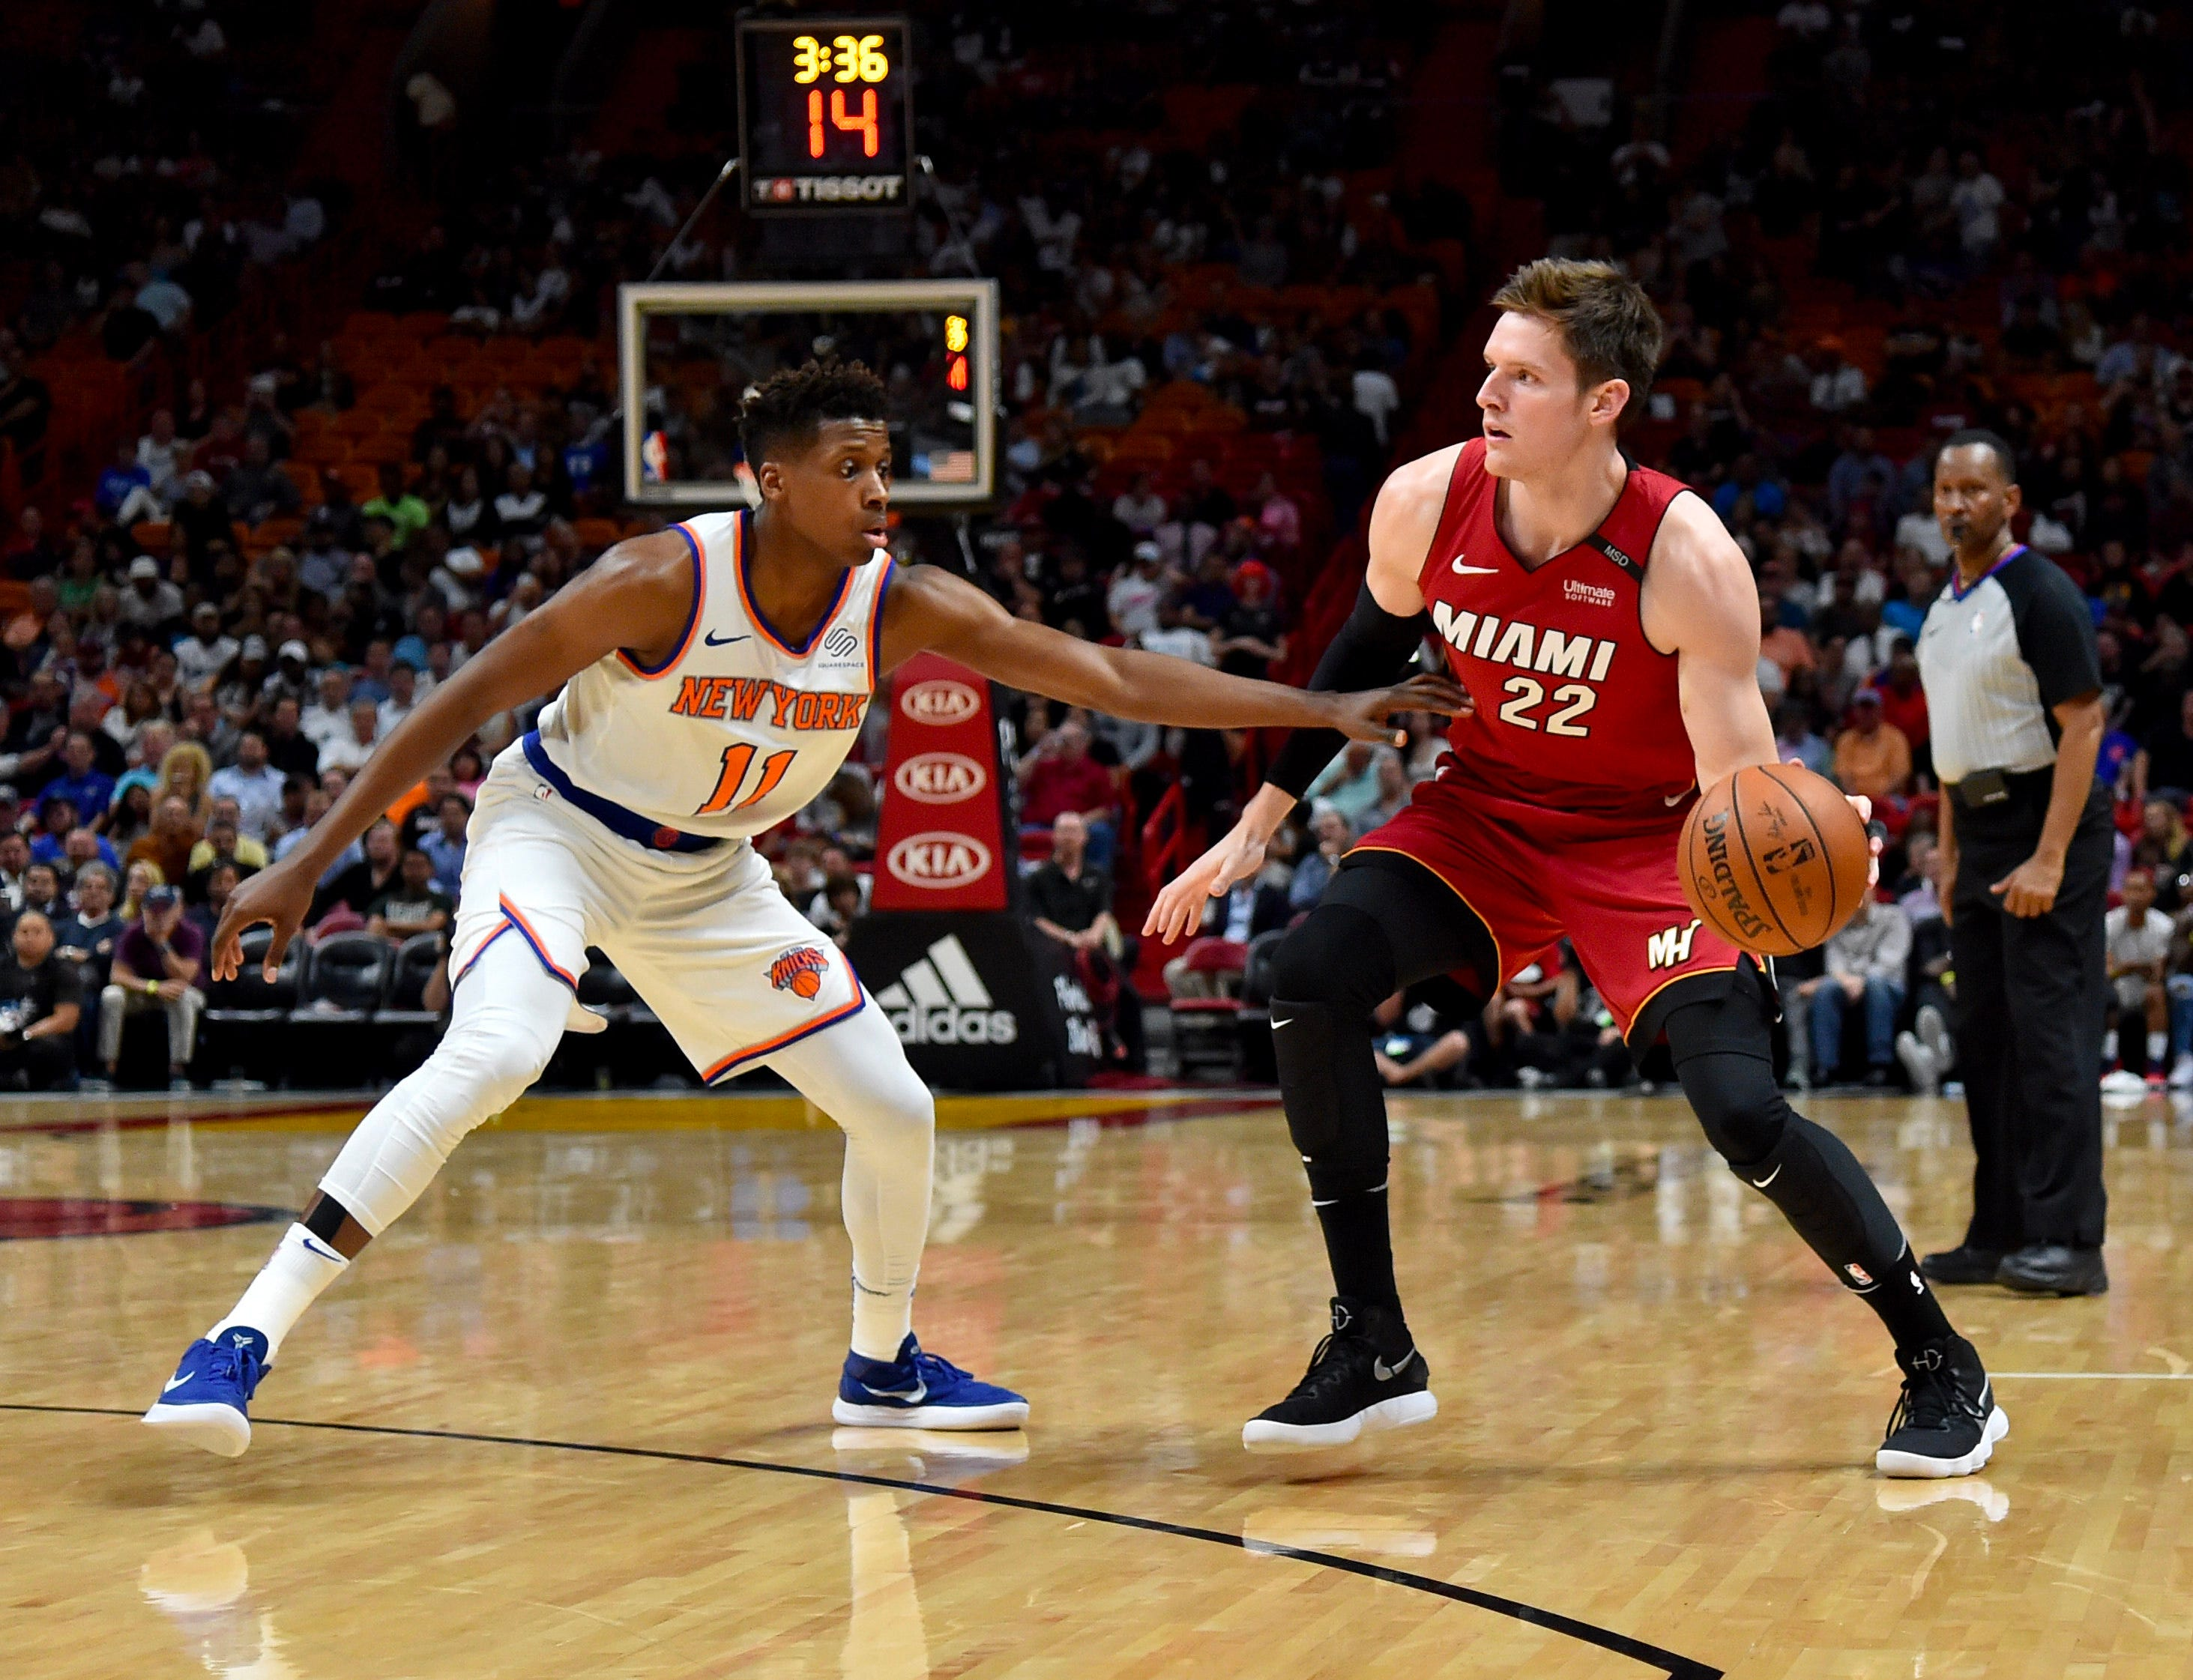 http   www.freep.com picture-gallery sports nba pistons 2018 07 15 ... 7c17c1d4c